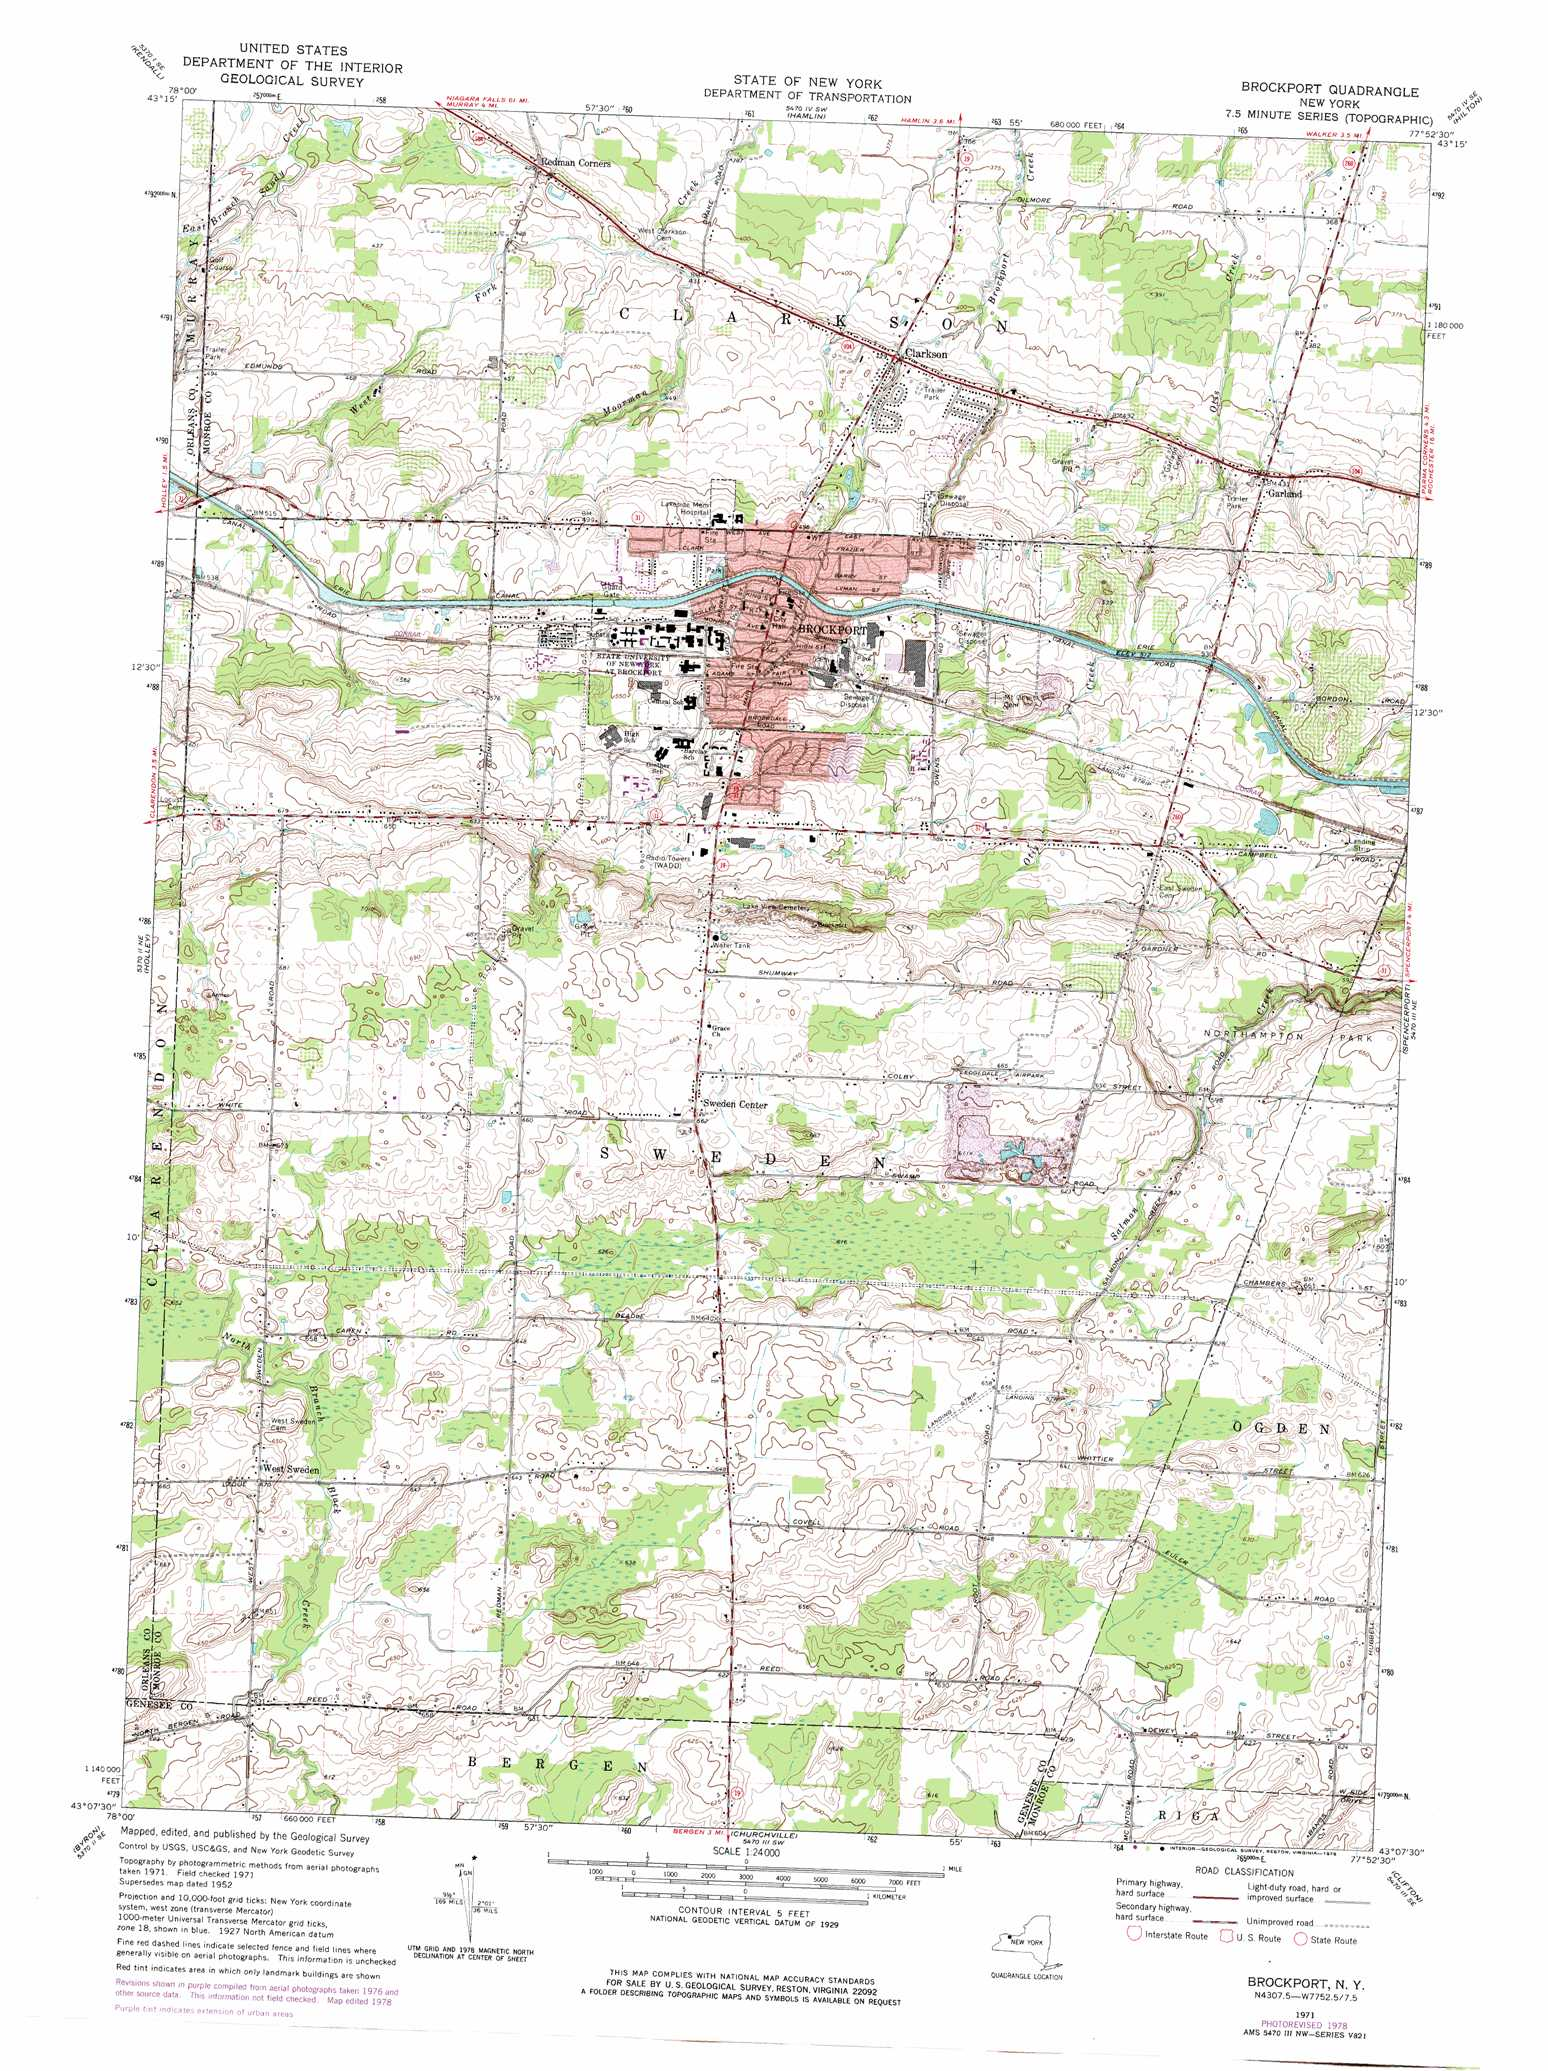 quad cities map with 43077b8 on 34120d4 together with 43077b8 in addition Map further info moreover Mountain Bike Trails.